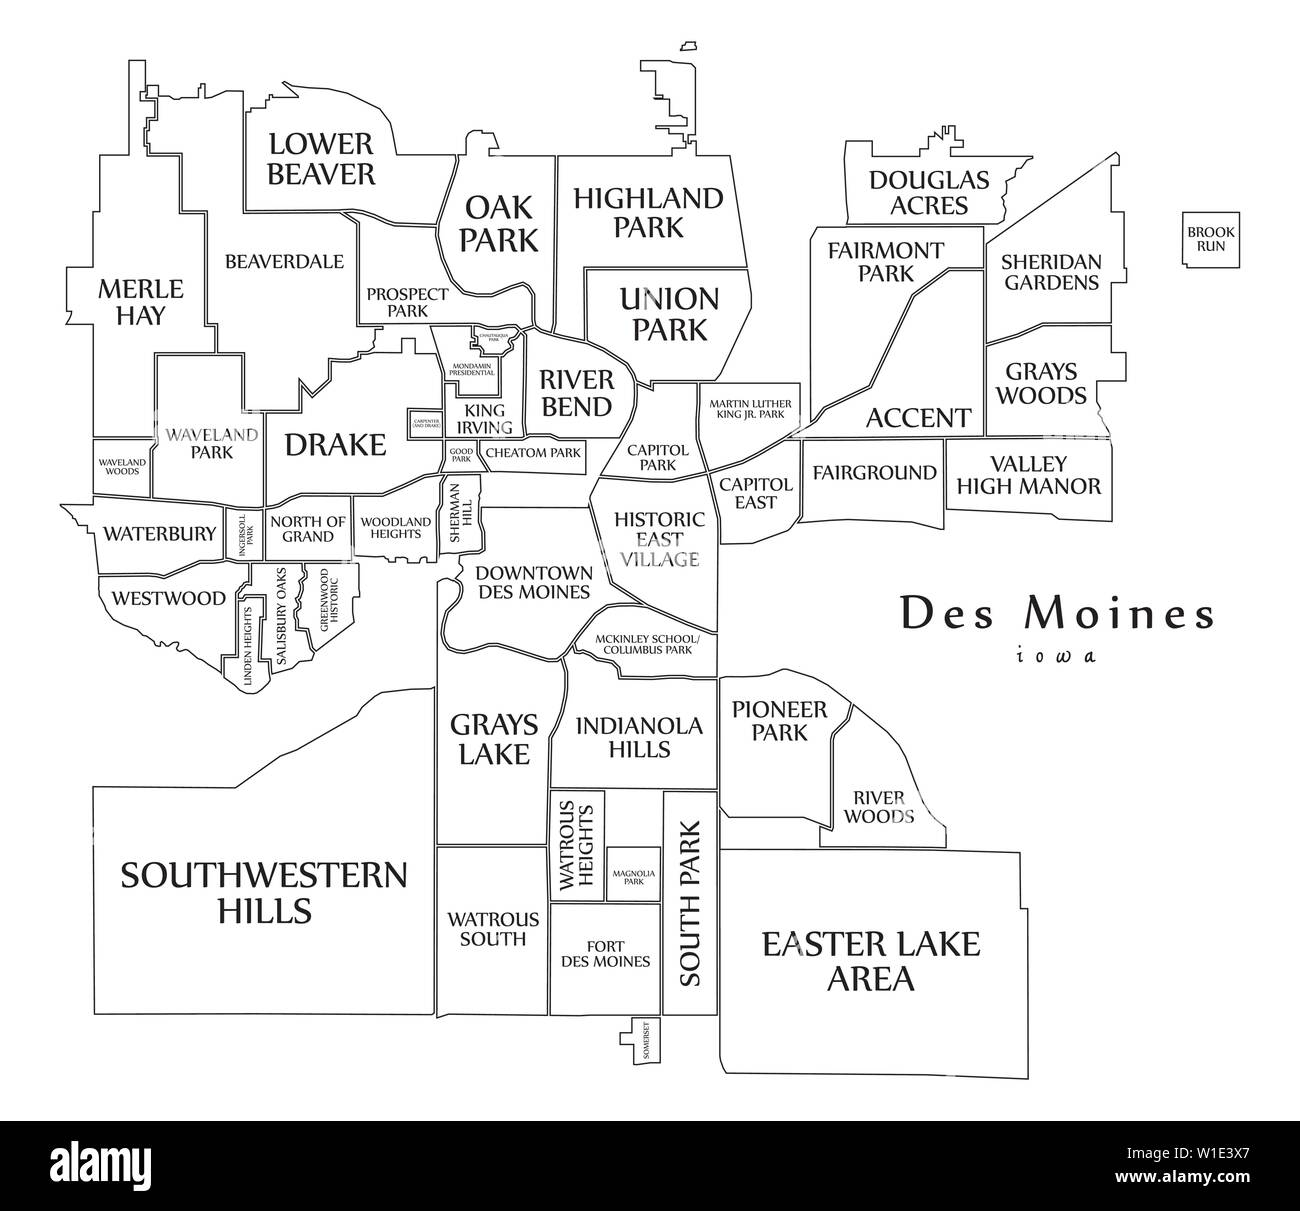 Modern City Map - Des Moines Iowa city of the USA with ...